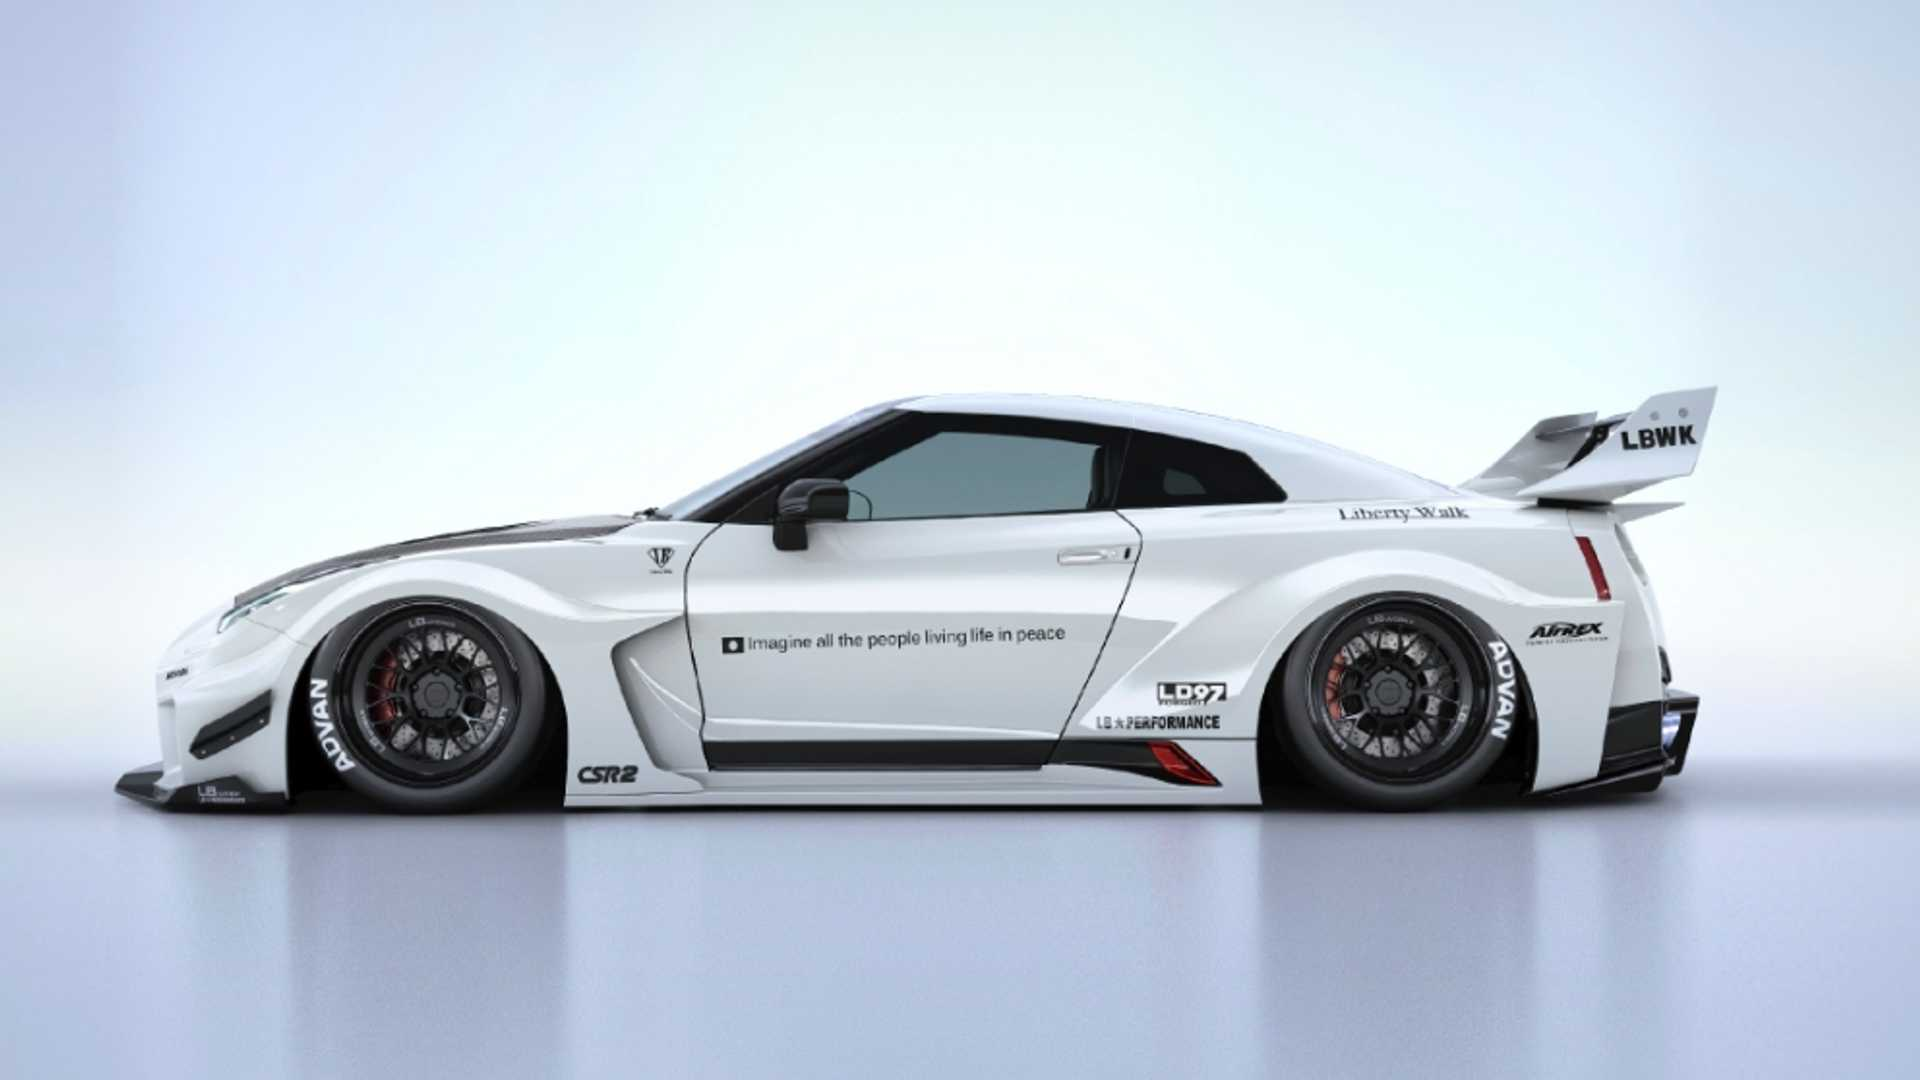 Liberty Walk Wants To Sell You A 73 570 Nissan Gt R Body Kit